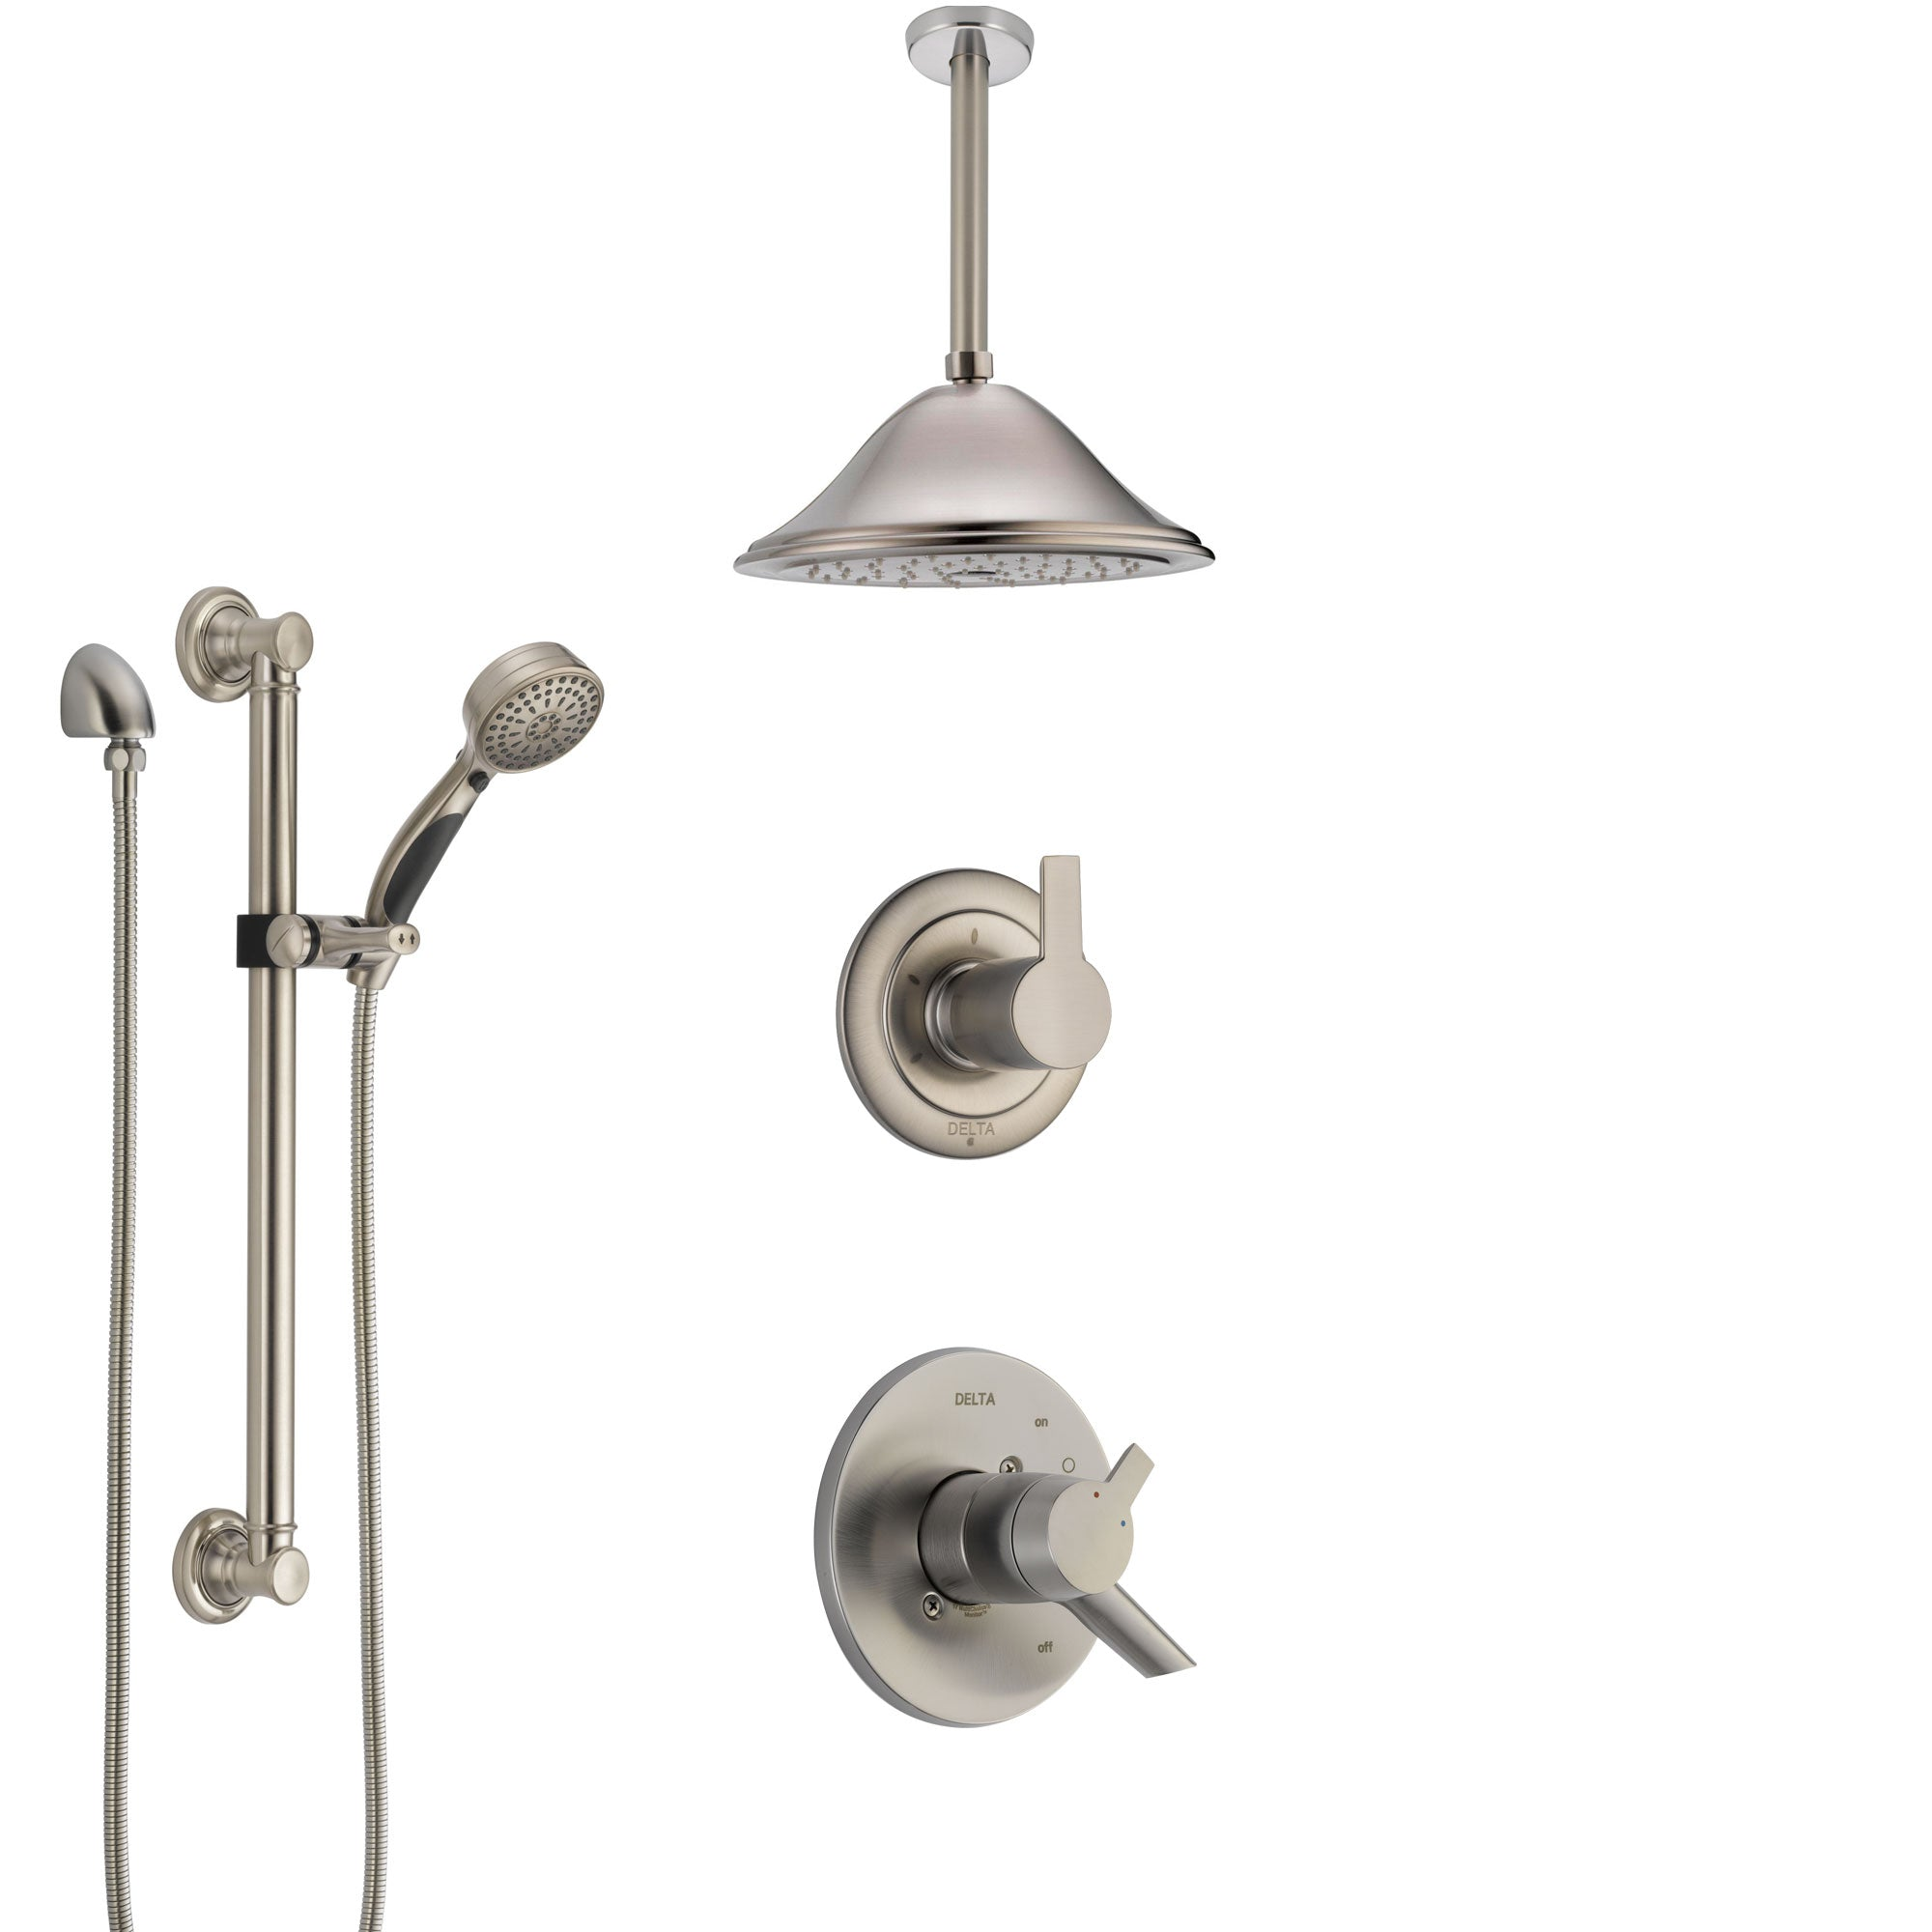 Delta Compel Dual Control Handle Stainless Steel Finish Shower System, Diverter, Ceiling Mount Showerhead, and Hand Shower with Grab Bar SS1761SS7